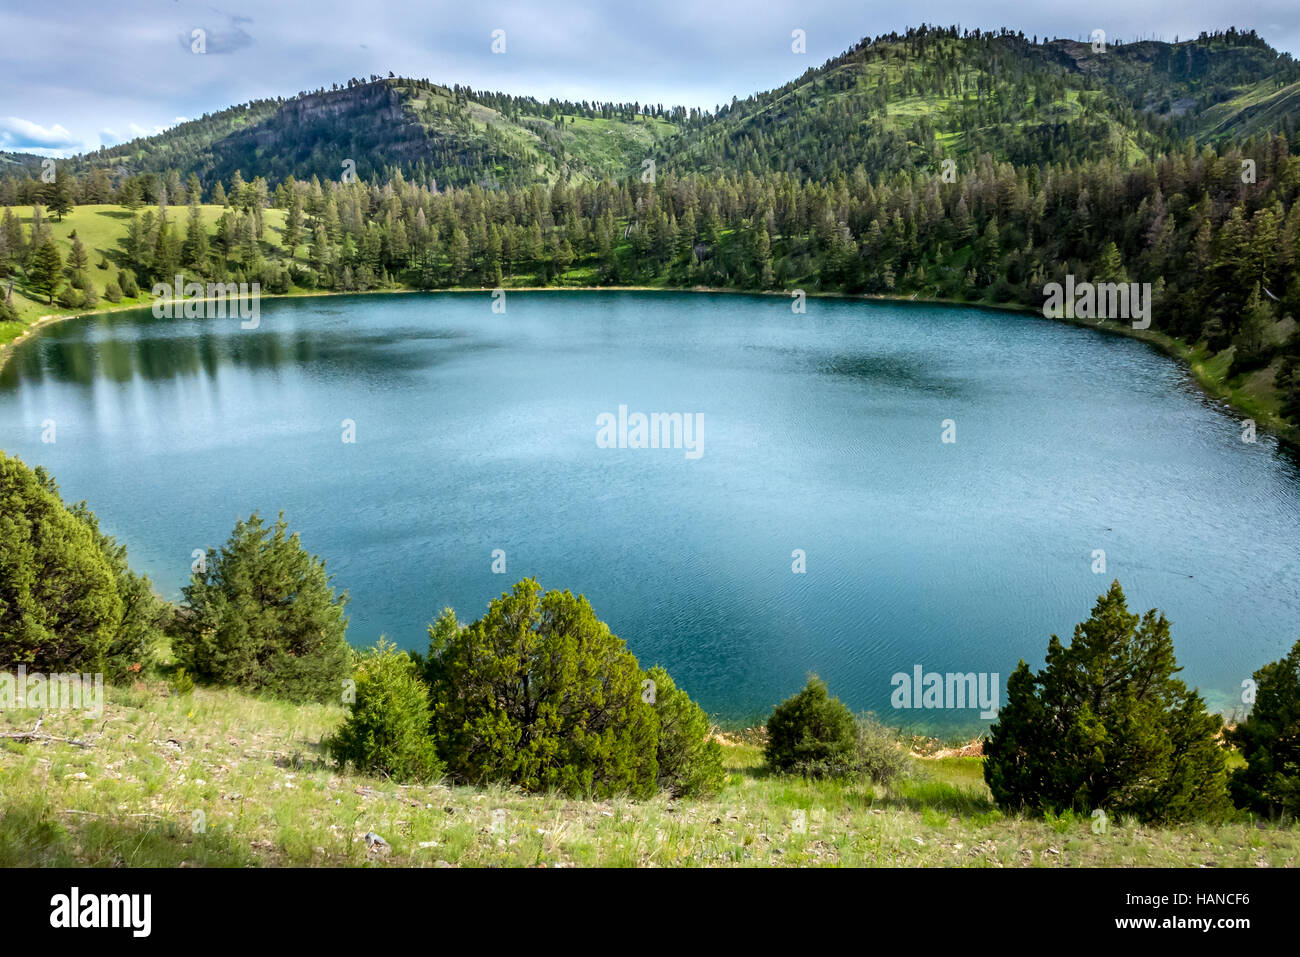 A small lake on the Hellroaring Nature Trail through Yellowstone National Park in Wyoming USA - Stock Image